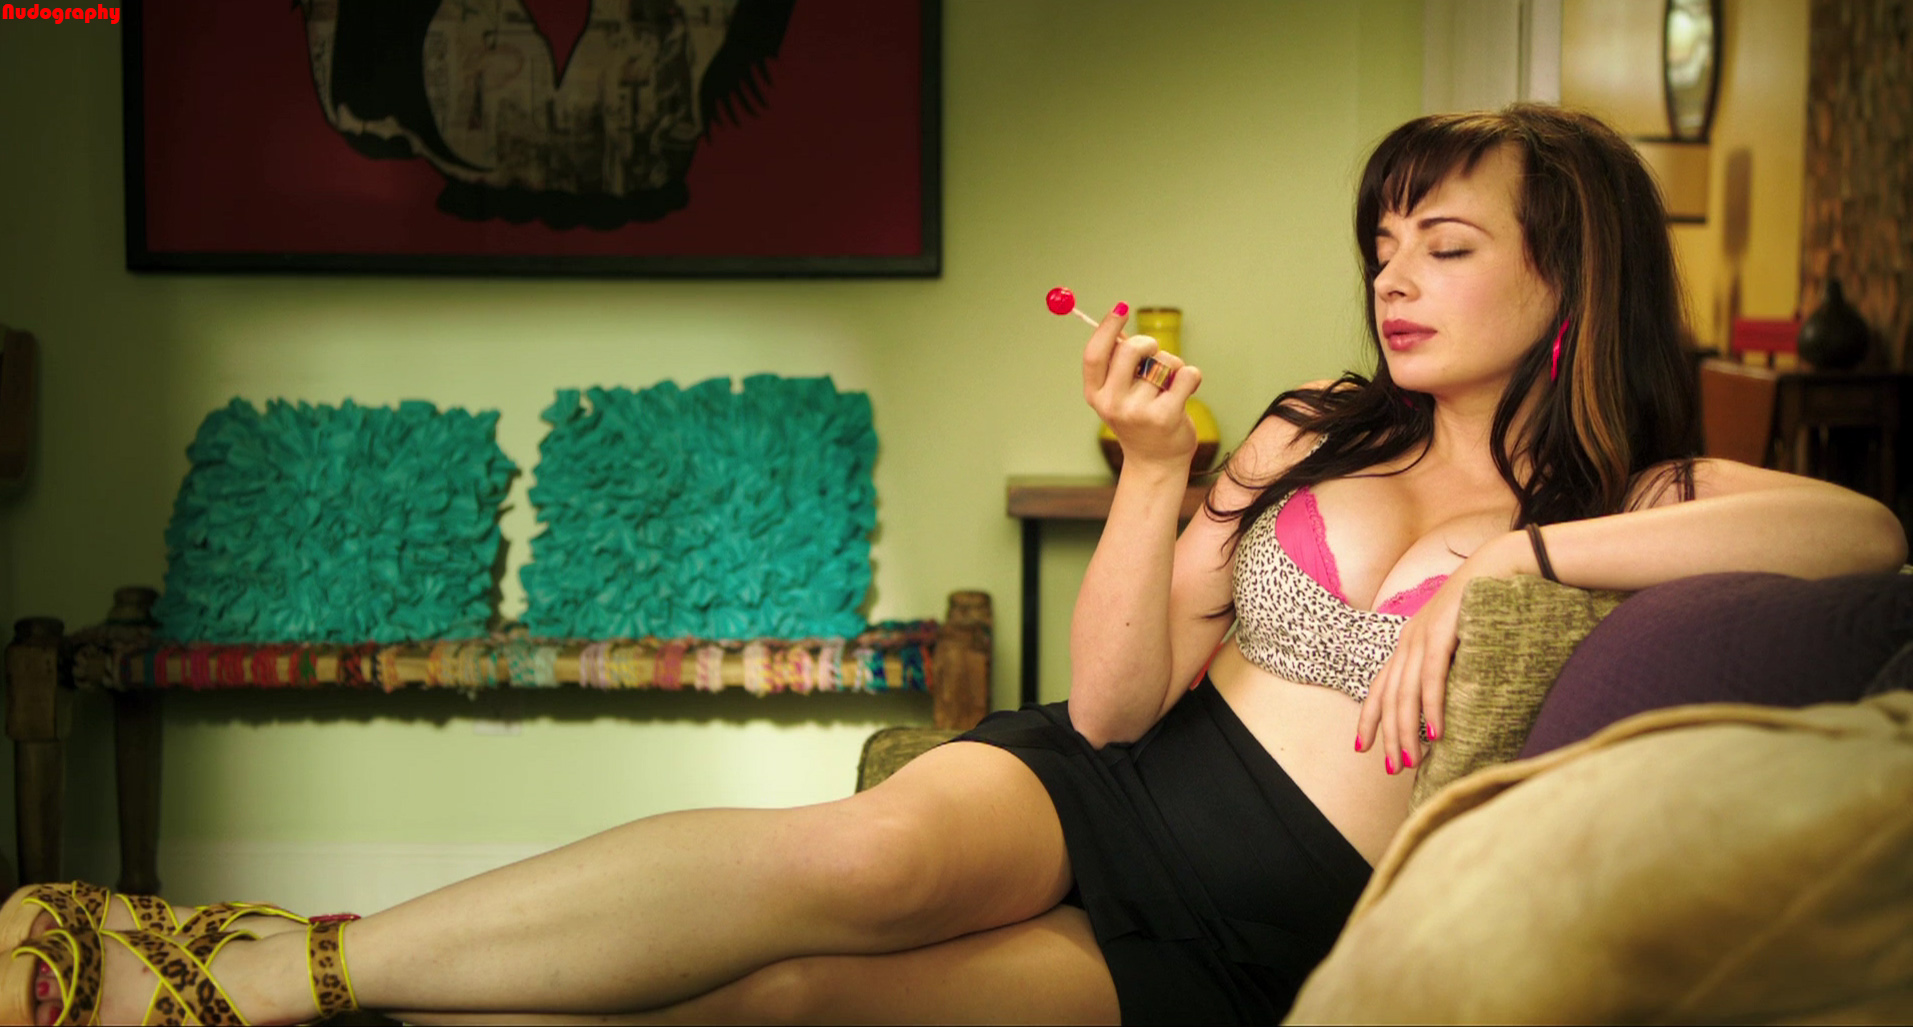 Ashley rickards behaving badly